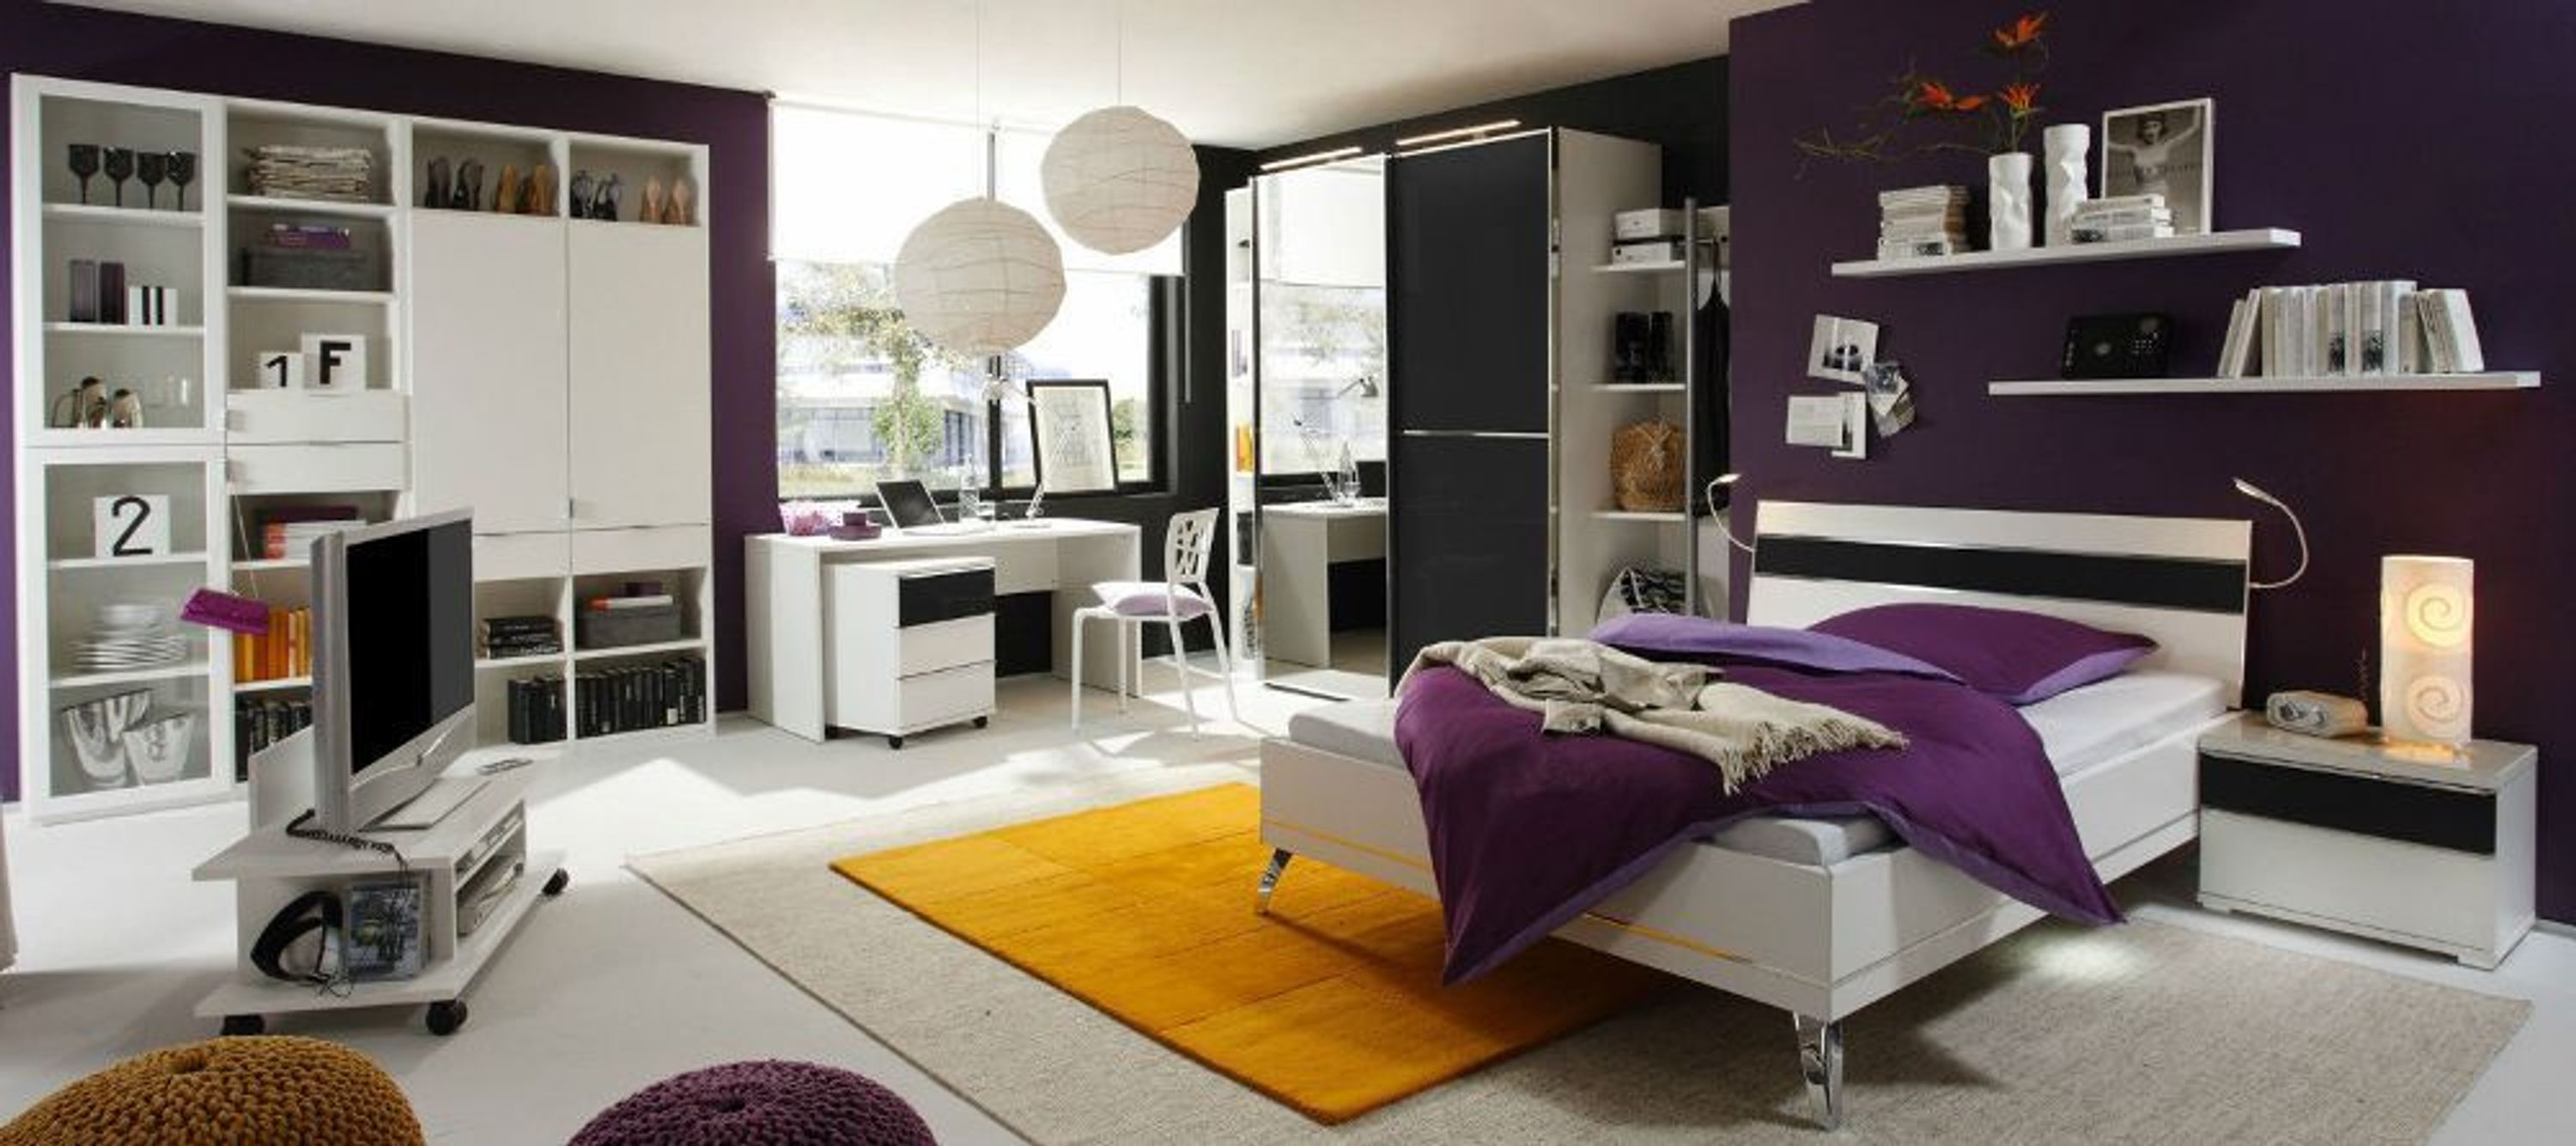 staud single wohnen sinfonie plus mini haushalt single. Black Bedroom Furniture Sets. Home Design Ideas